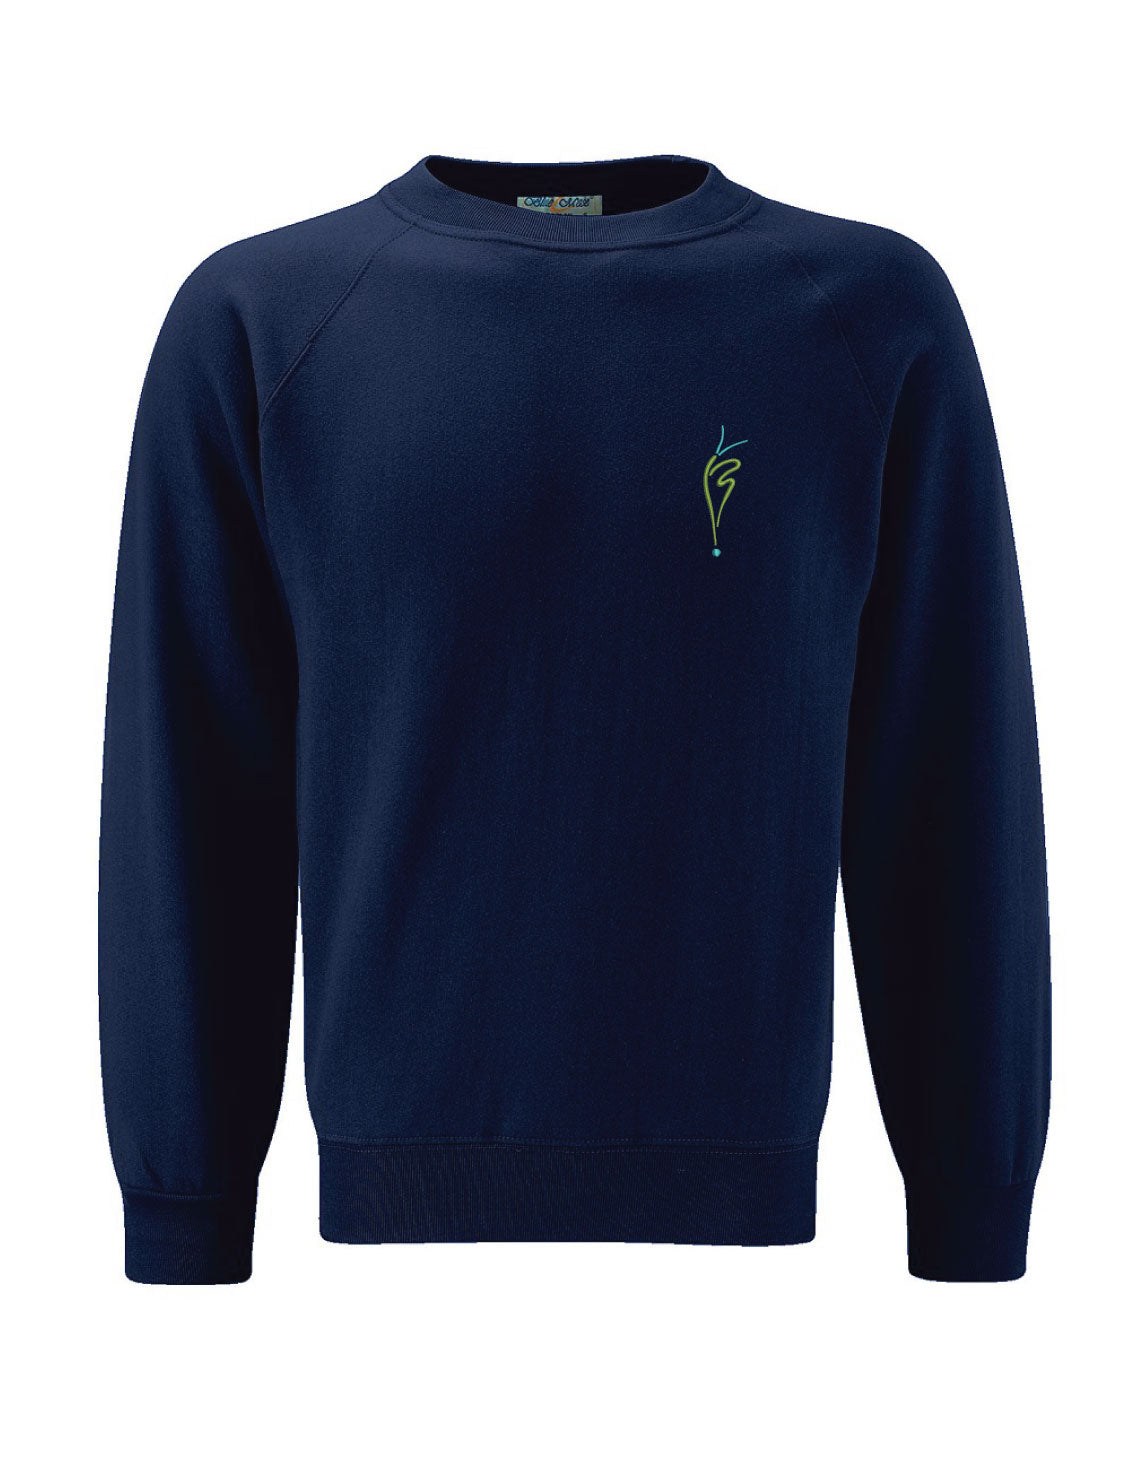 Kingsmead Primary School Sweatshirt